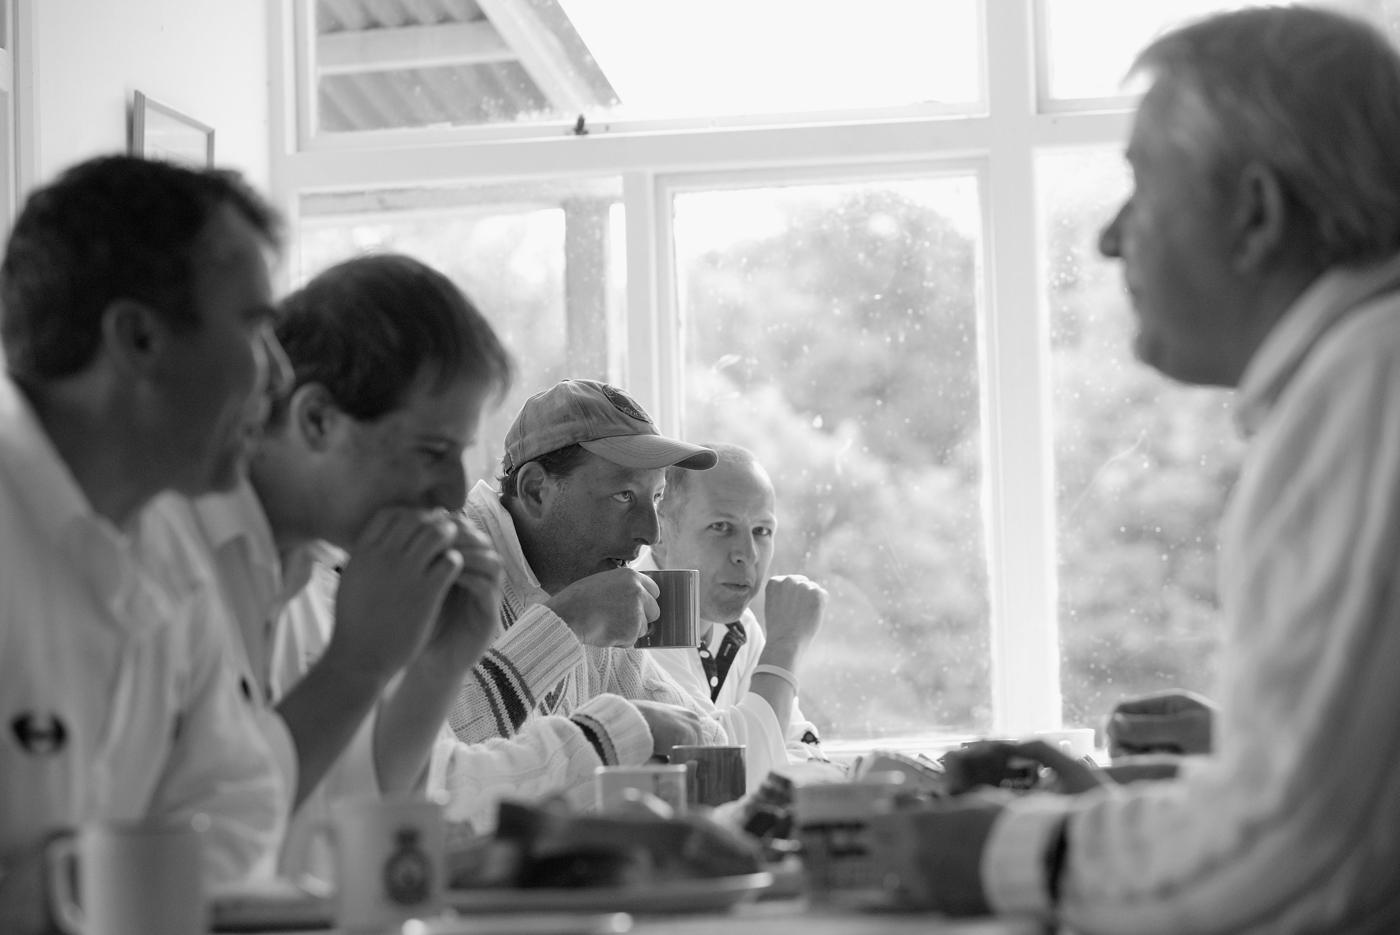 Where there's cricket, can tea be far behind?